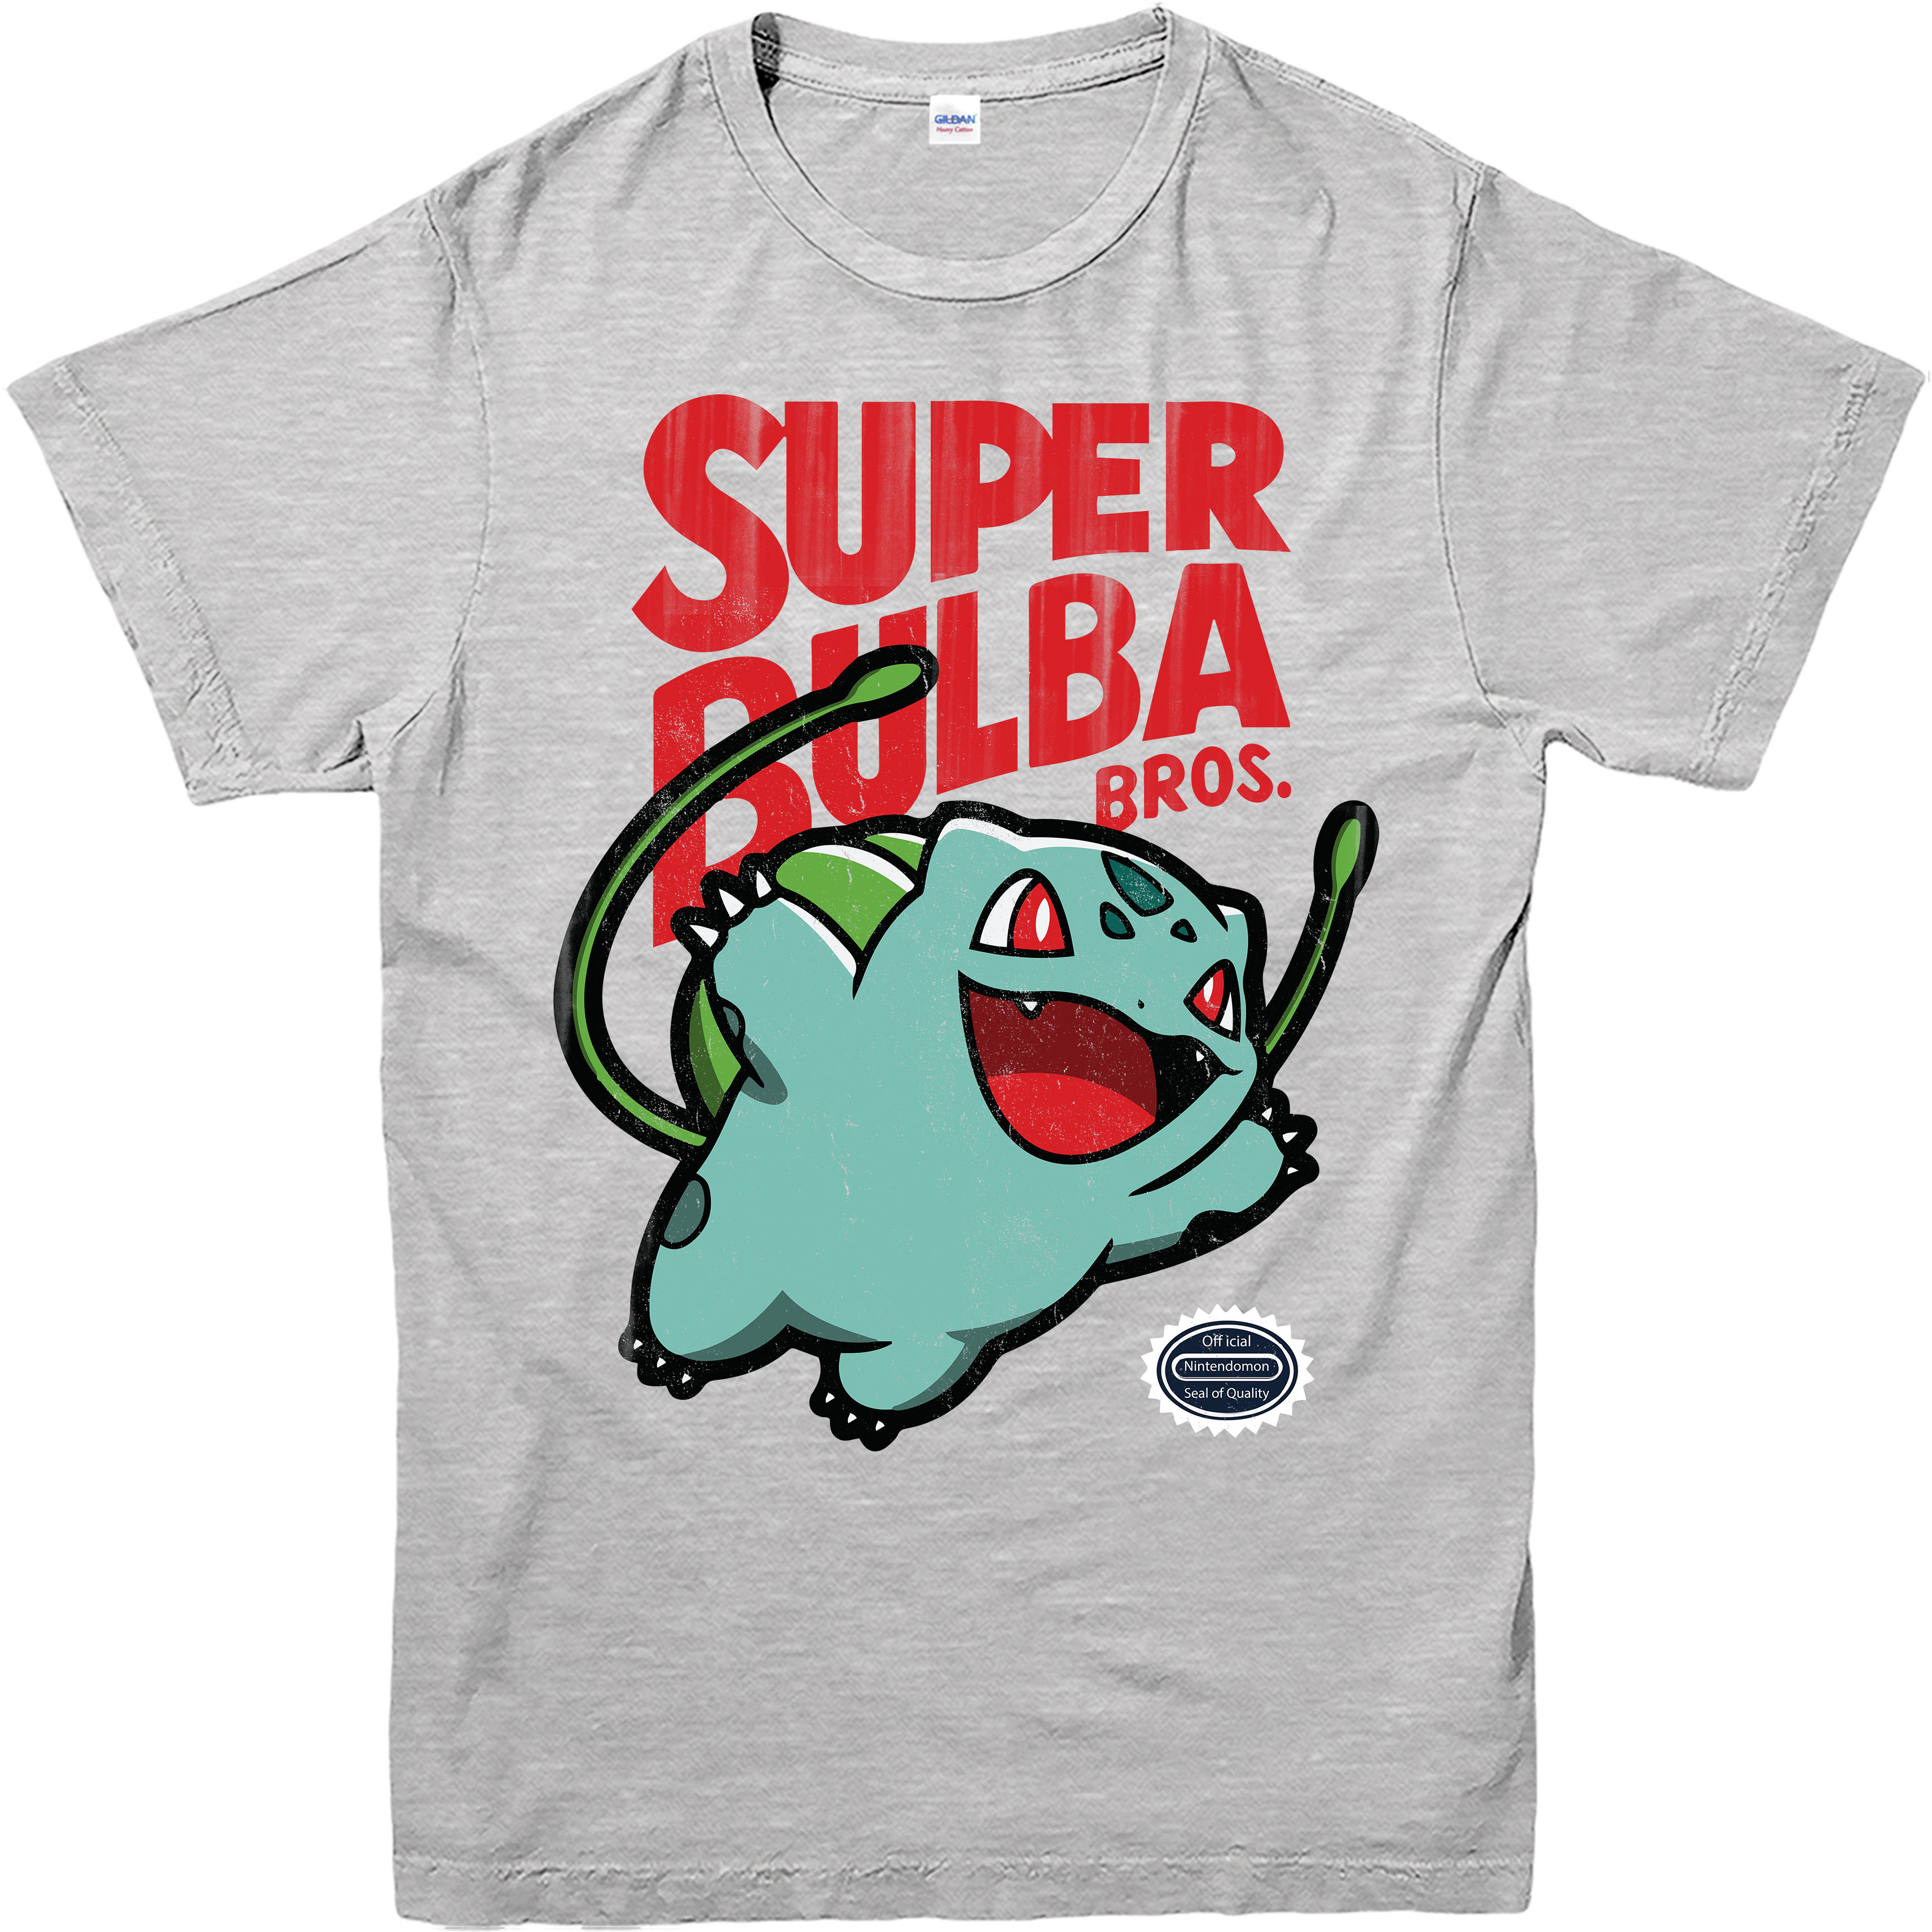 Pokemon T Shirt Casual Wear Super Bulba Mario Bros Spoof Adult and